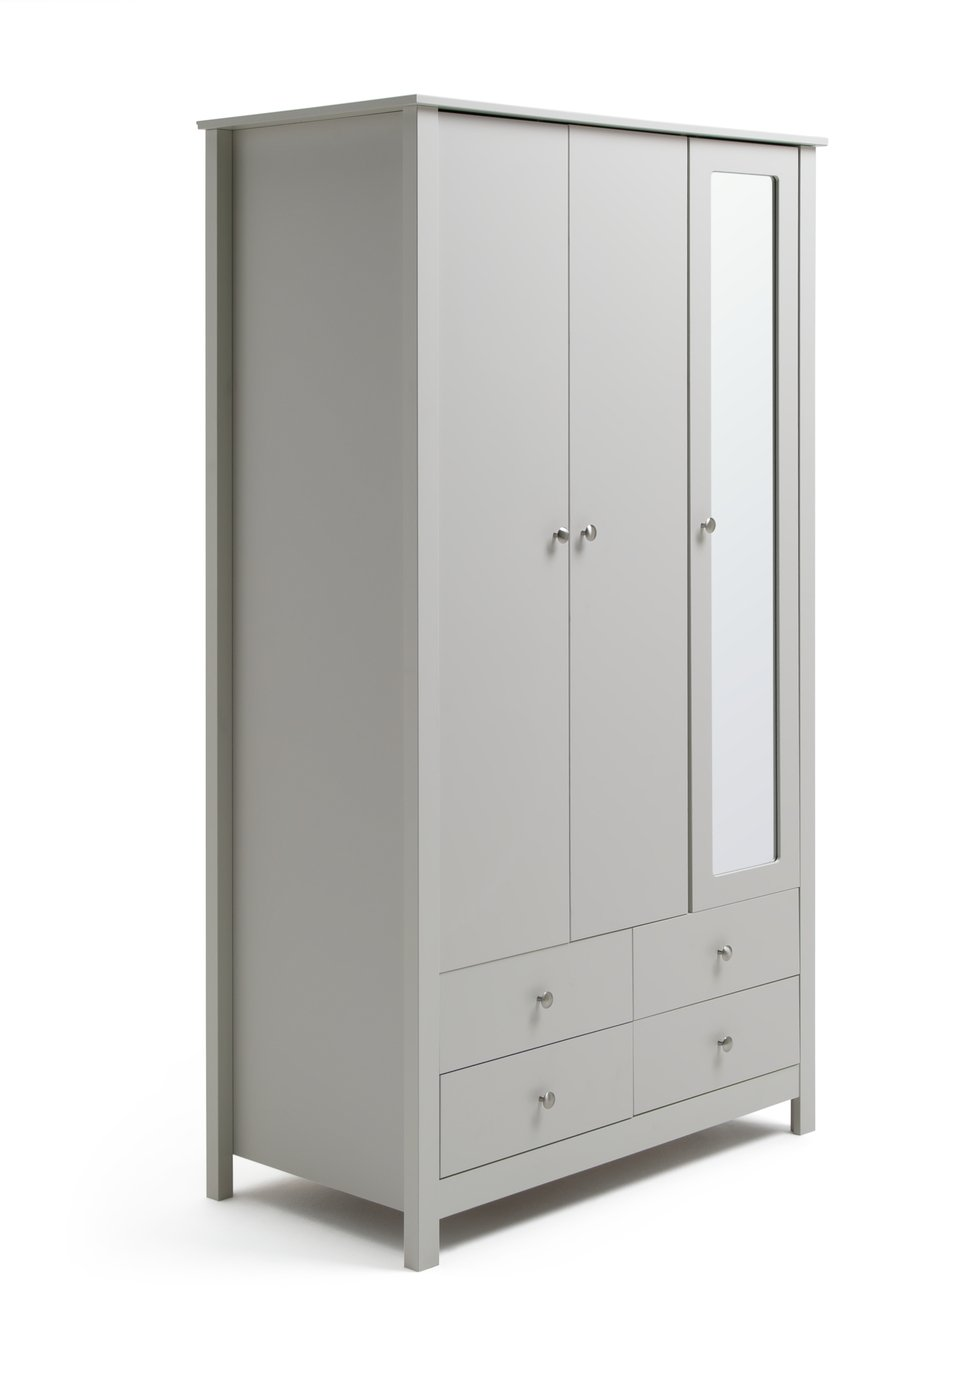 Argos Home Osaka 3 Door 4 Drawer Mirrored Wardrobe